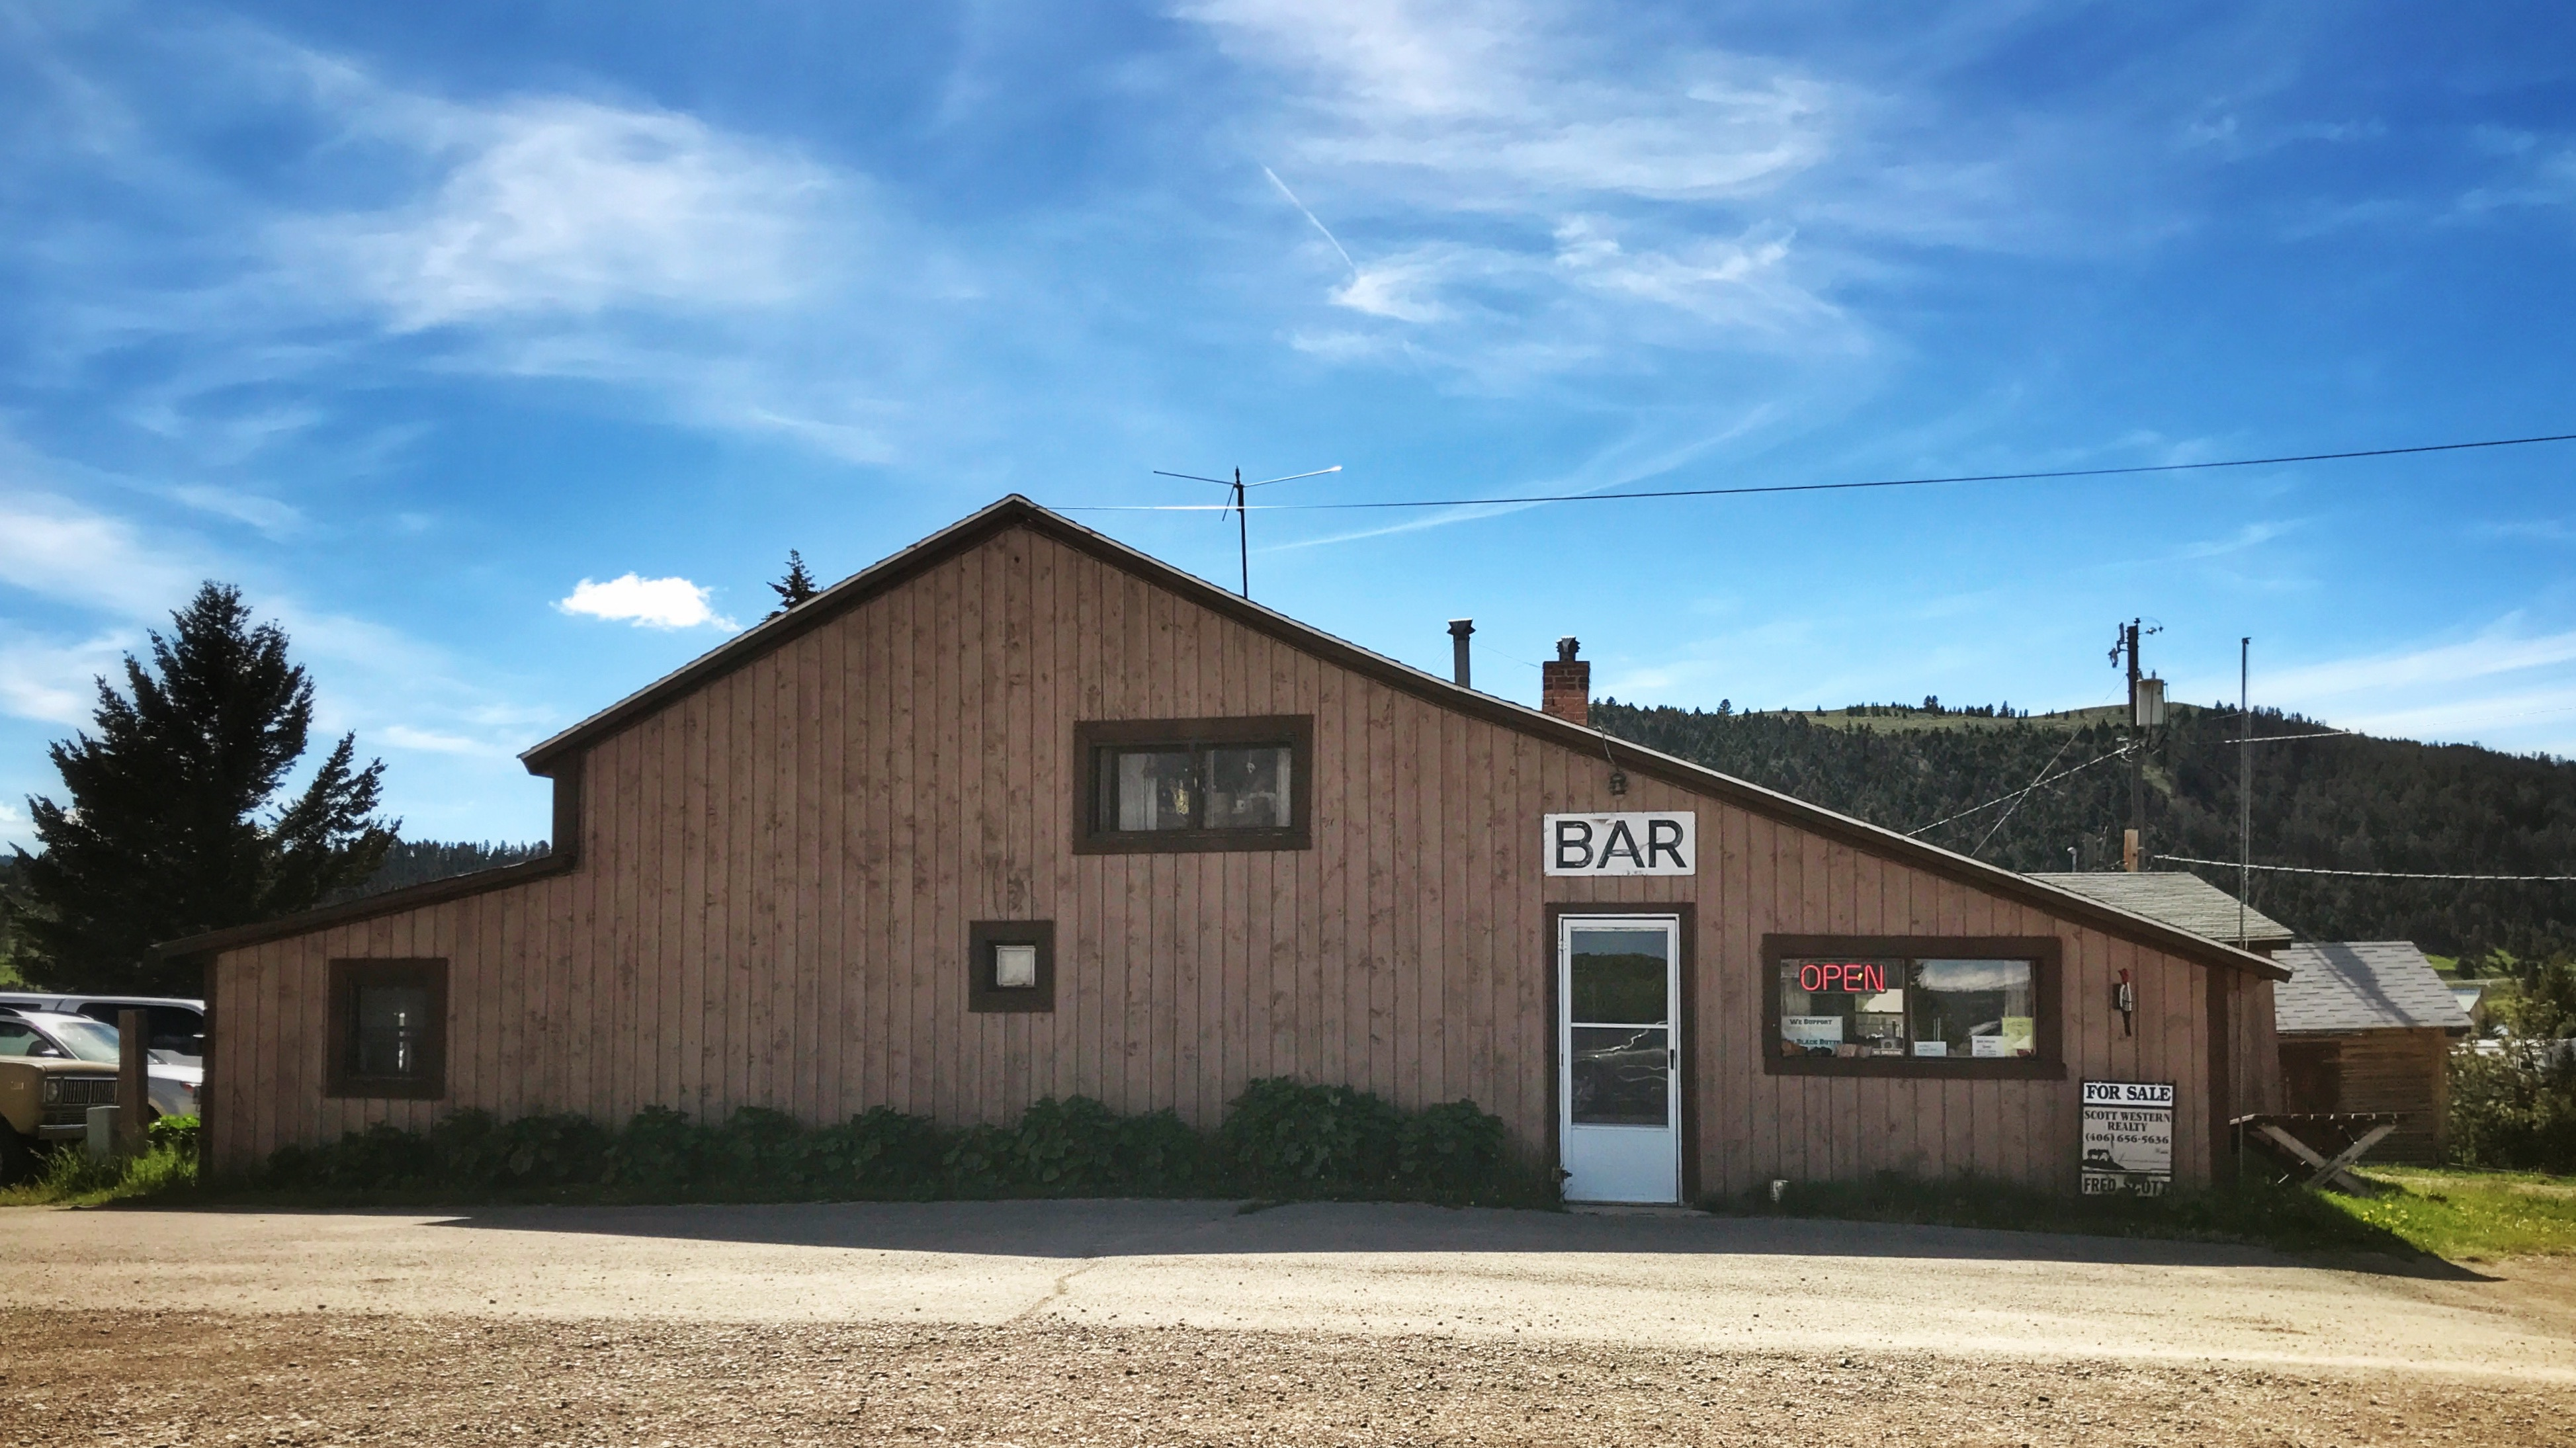 A great stop food, drinks and a place to stay on the eastern foothills of the Little Belts in Checkerboard, Montana on Highway 89 in Meagher County.